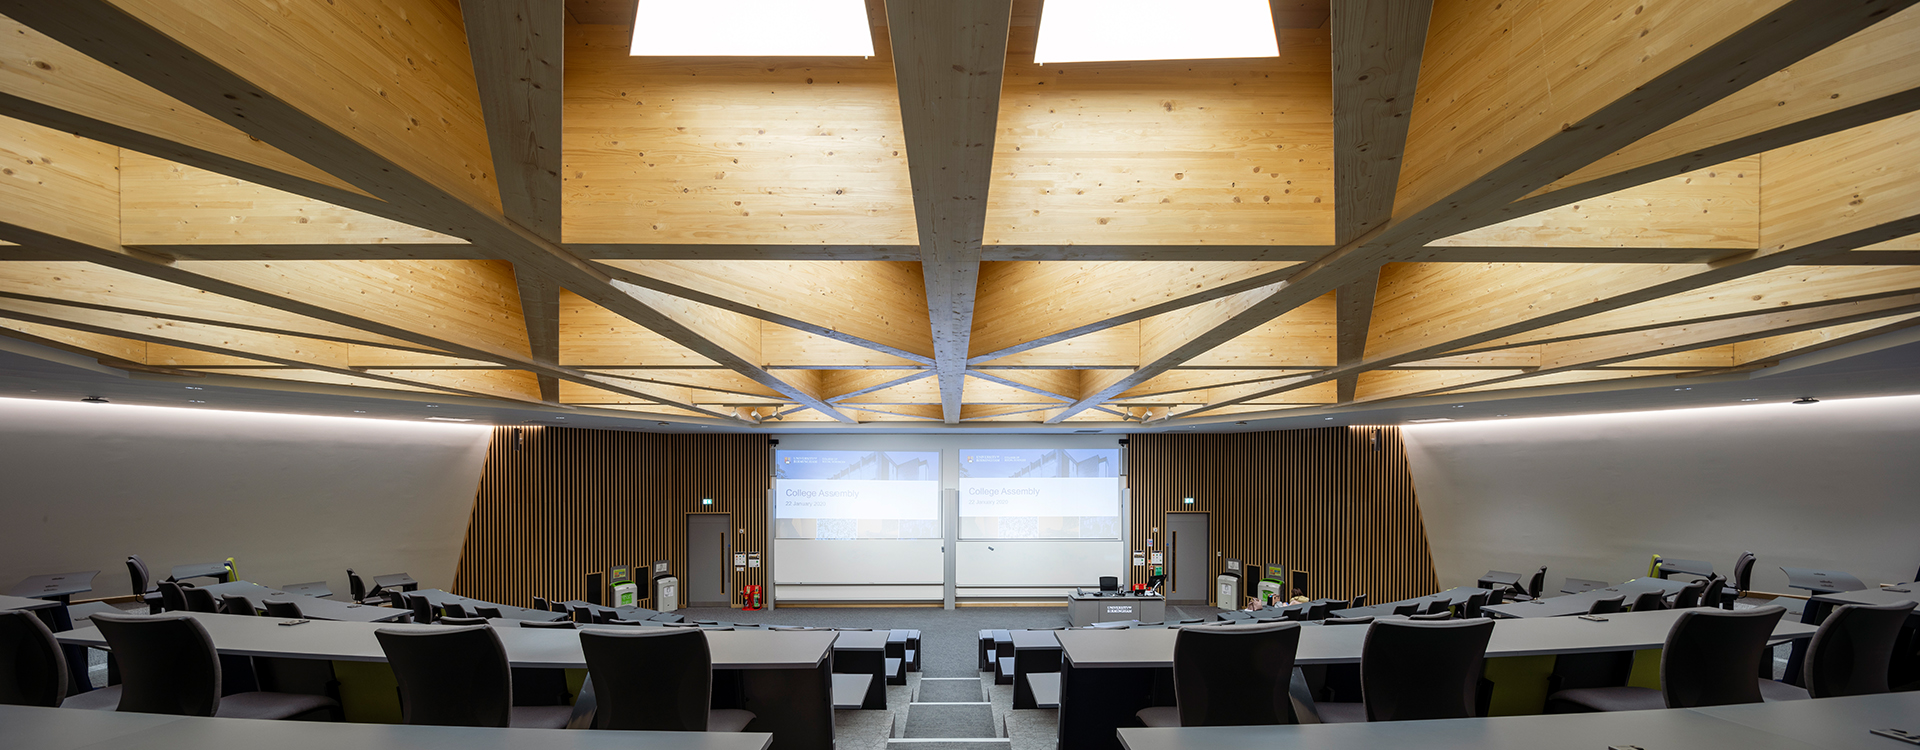 University of Birmingham Lecture Theatre and Collaborative Bench Seating